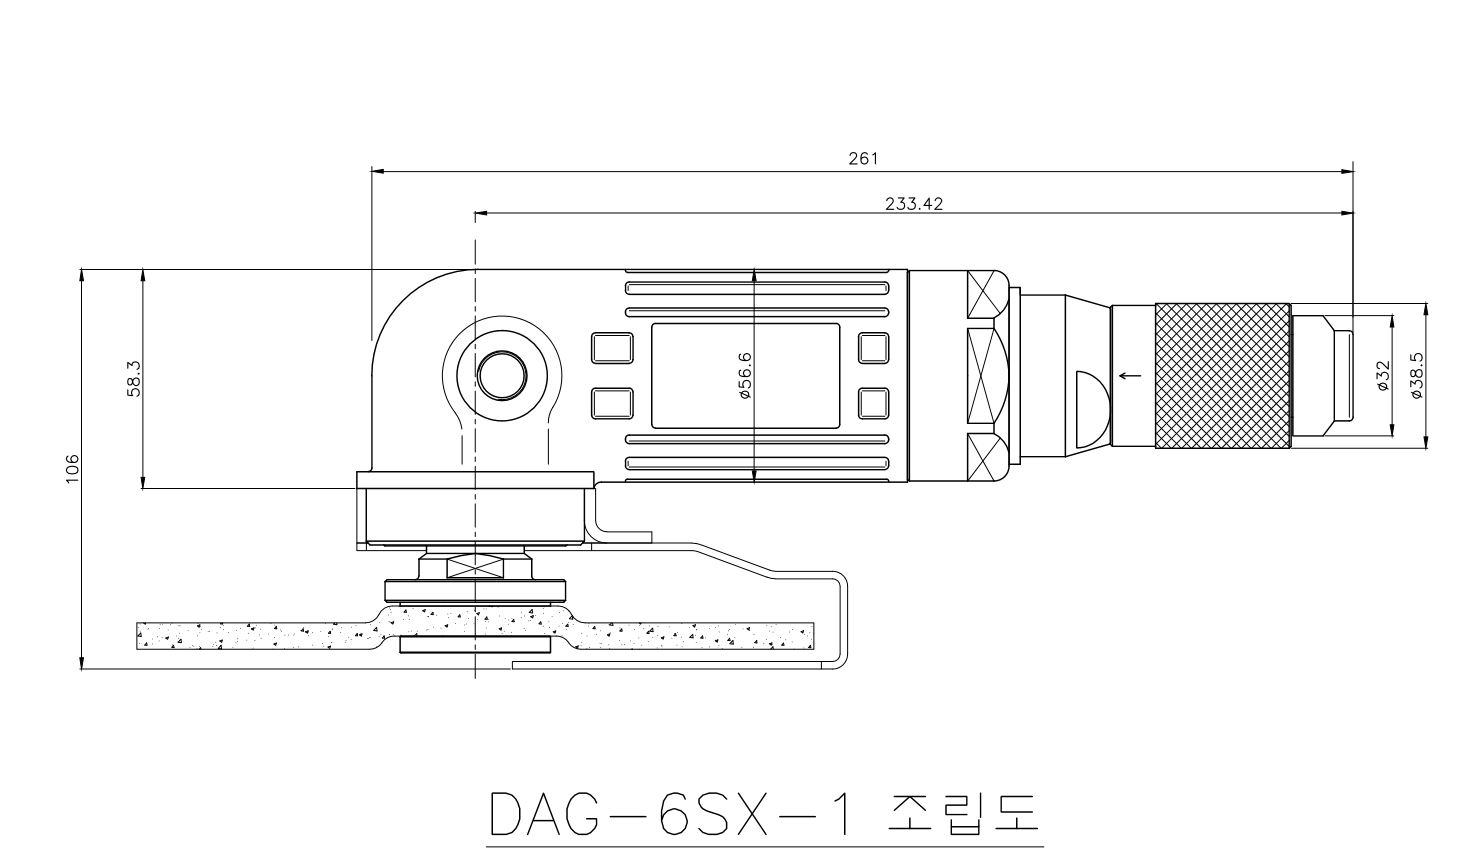 DAG-6SX-1_outer dimension